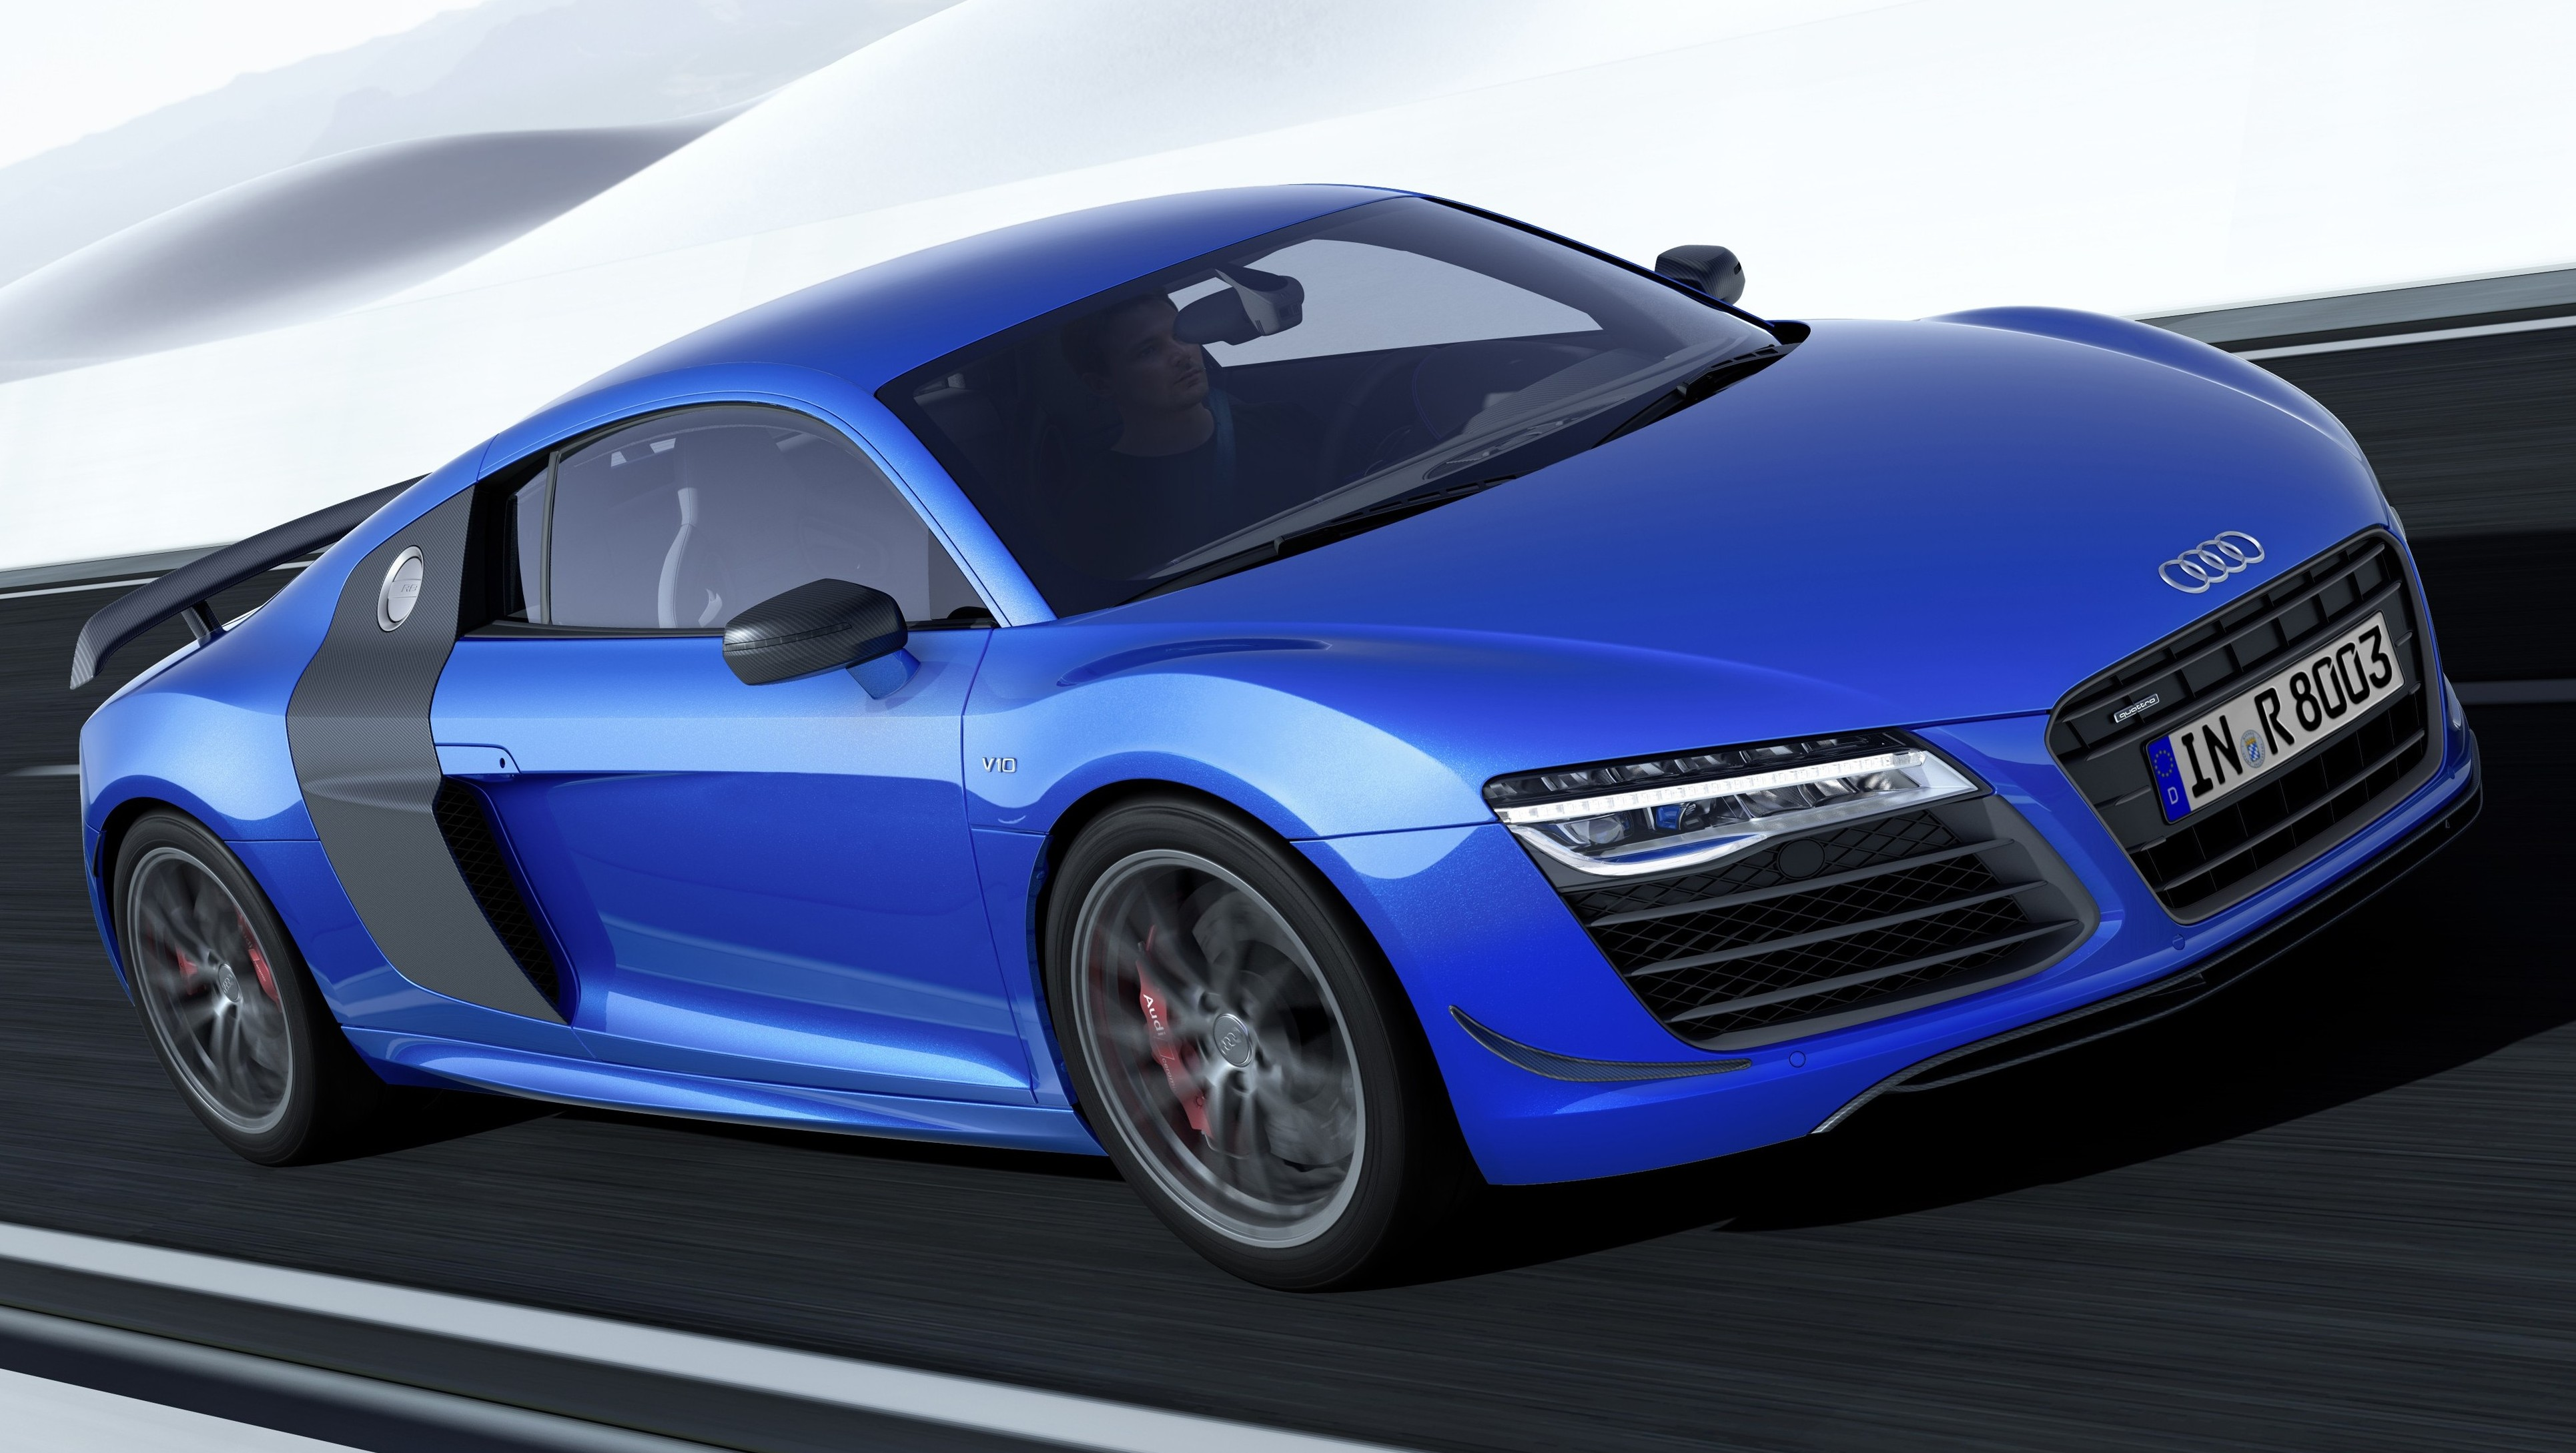 audi r8 lmx 570 ps beast to be first with laser lights image 246866. Black Bedroom Furniture Sets. Home Design Ideas